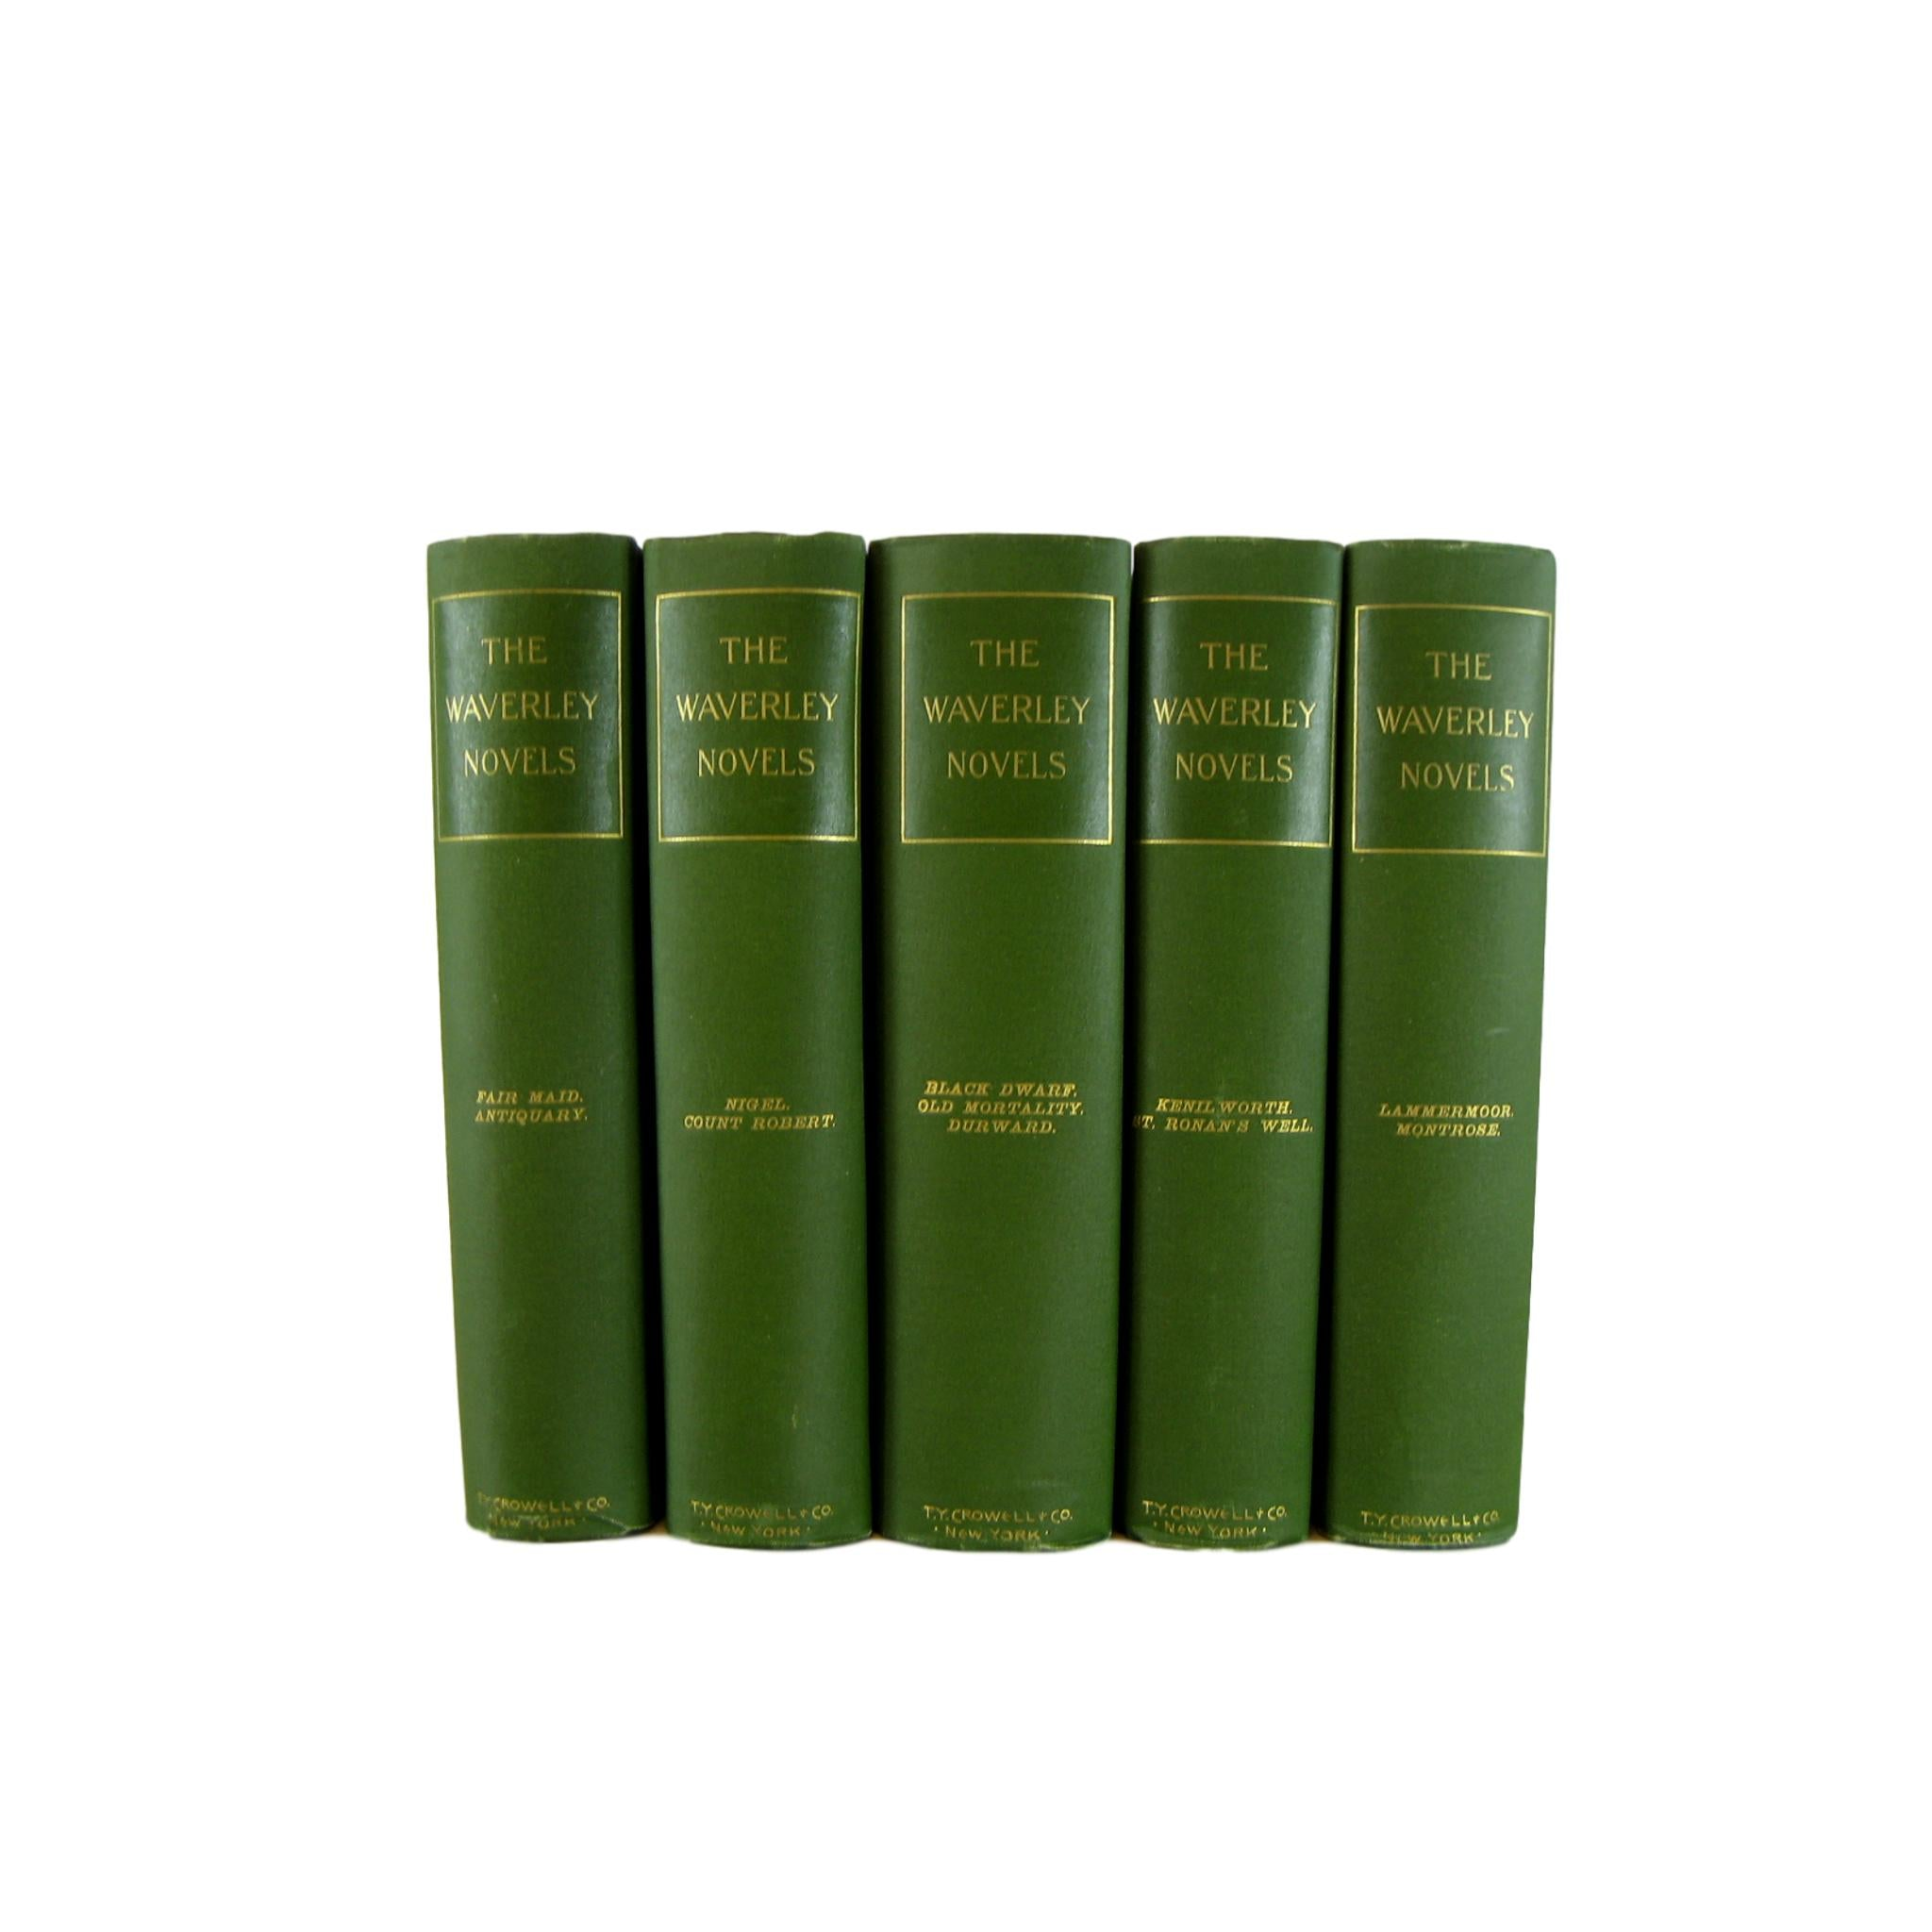 Antique Decorative Book Set of Green Waverley Novels, S/5 - Decades of Vintage